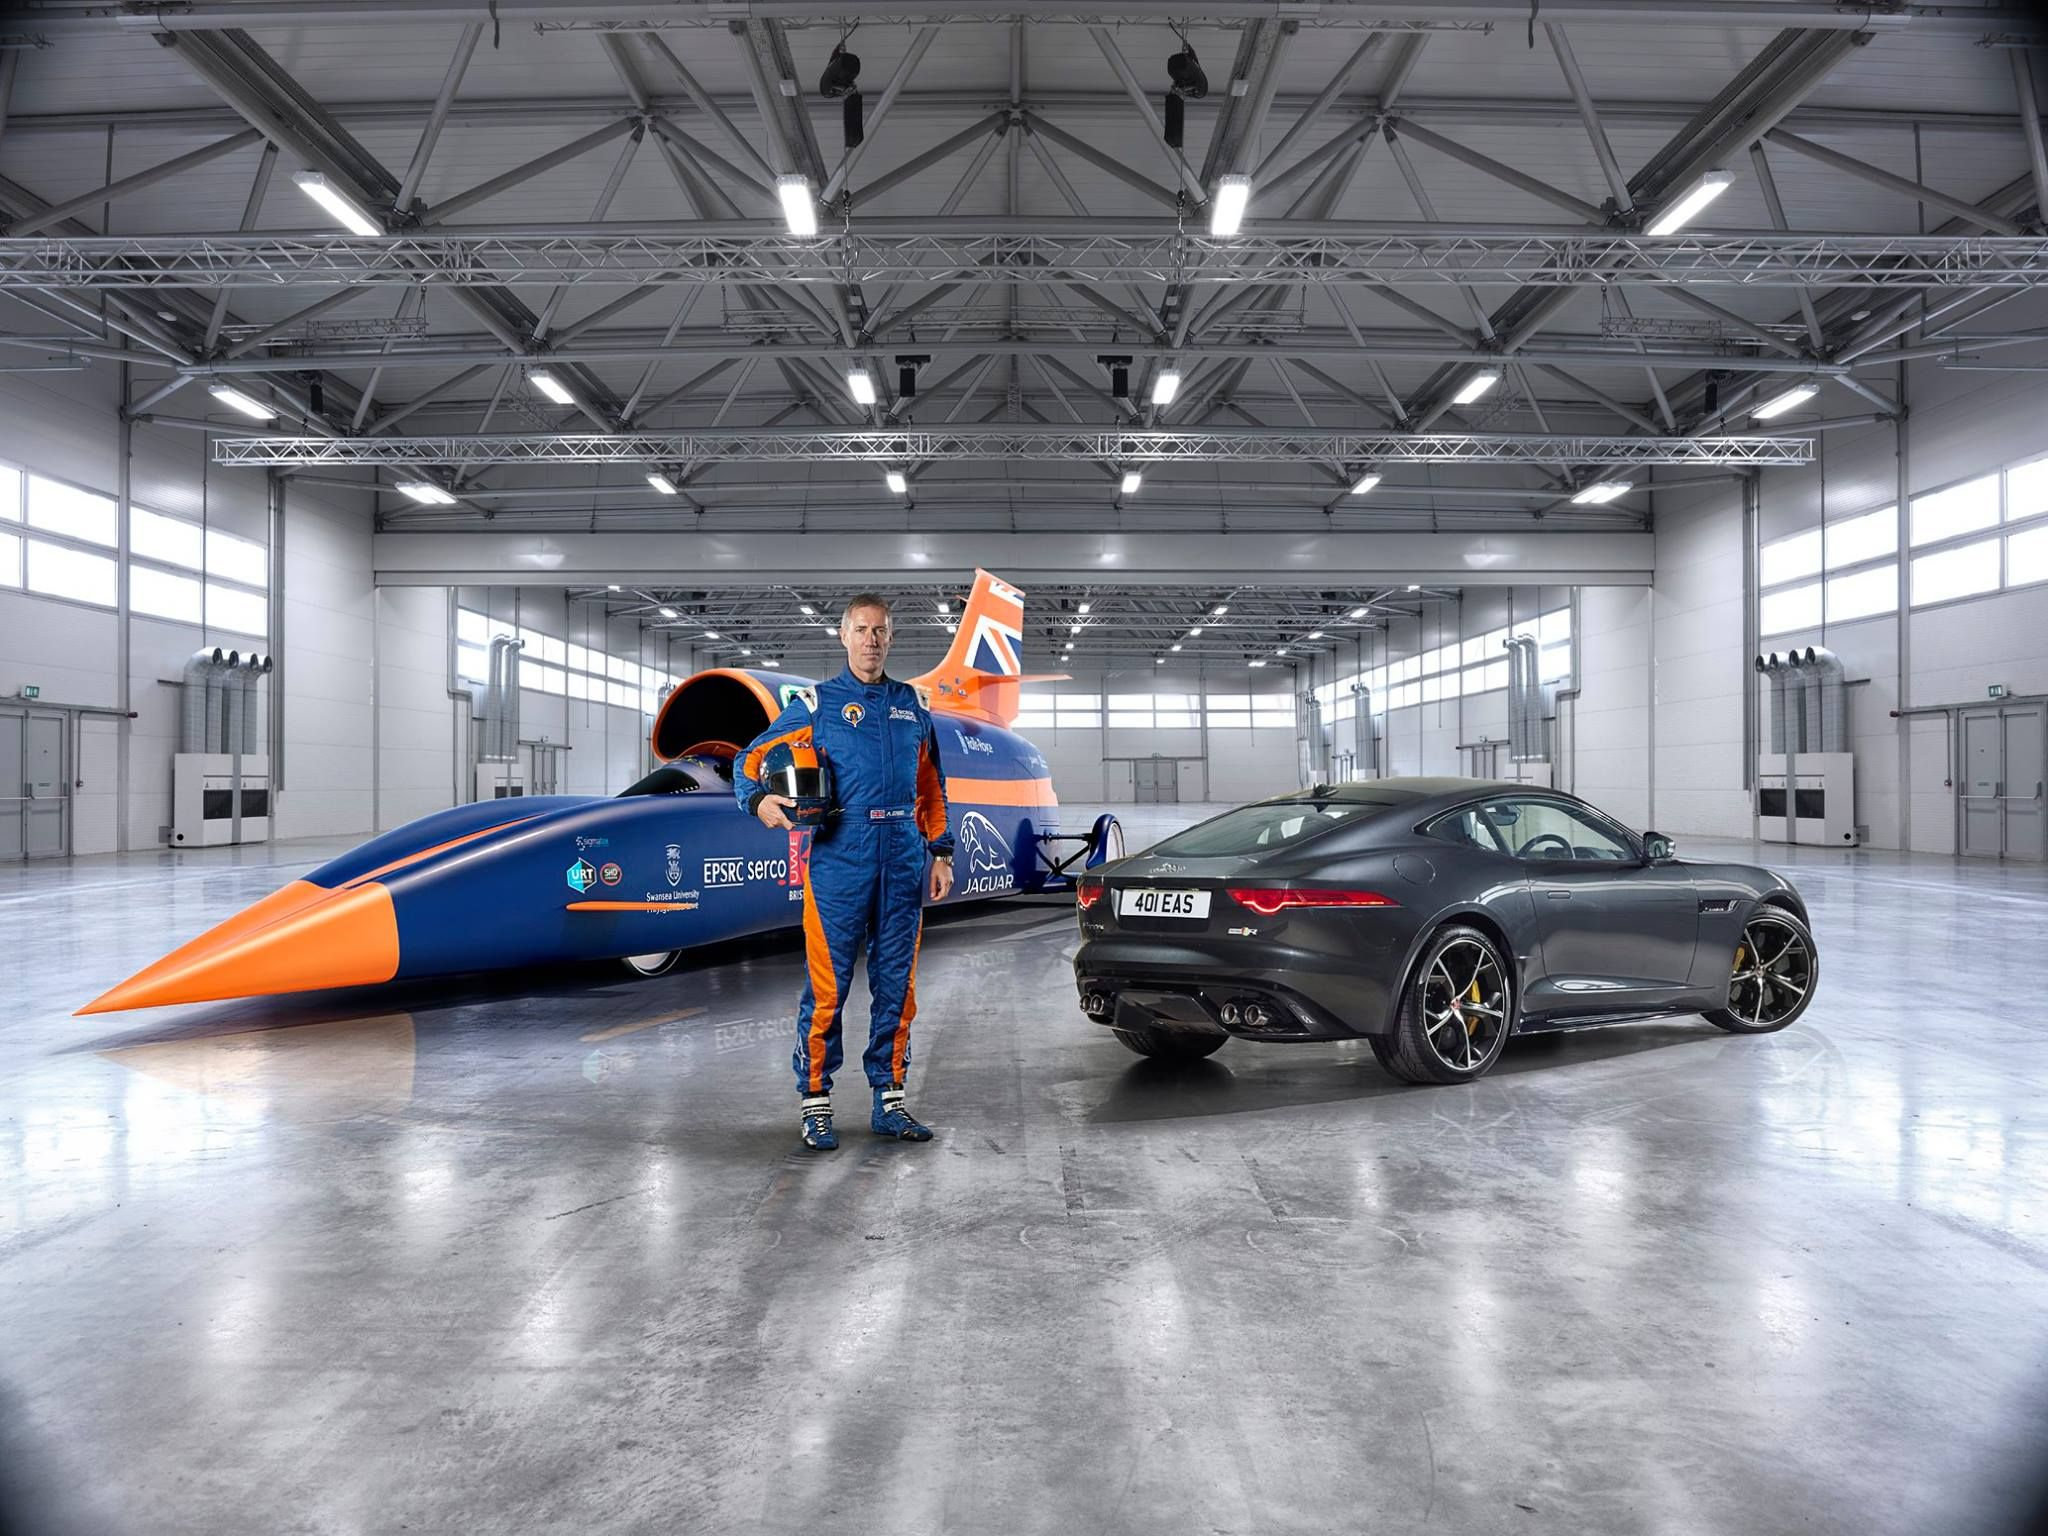 Bloodhound Ssc World Record Speed Car Car In The World Bugatti Veyron Super Sport Fast Cars